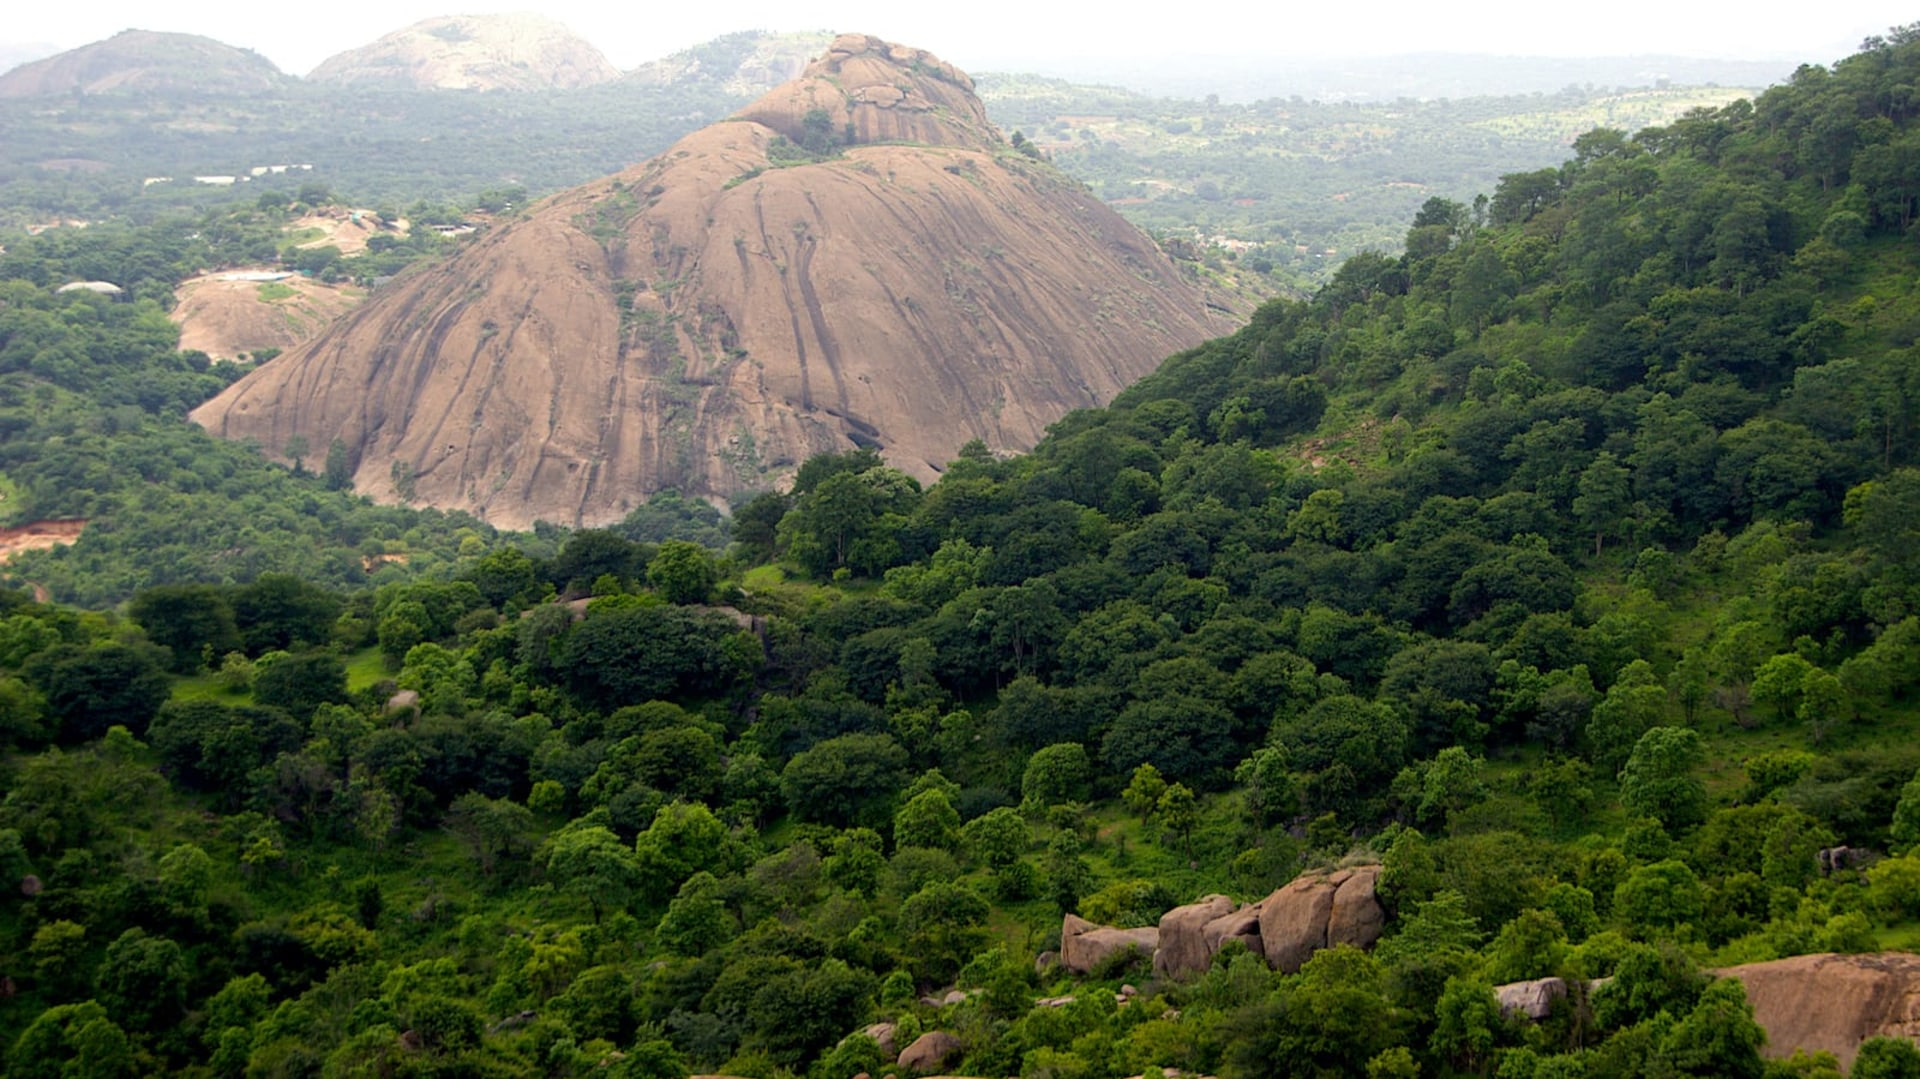 Ramadevarabetta: A Vulture Sanctuary in Rapidly Urbanising Ramanagara